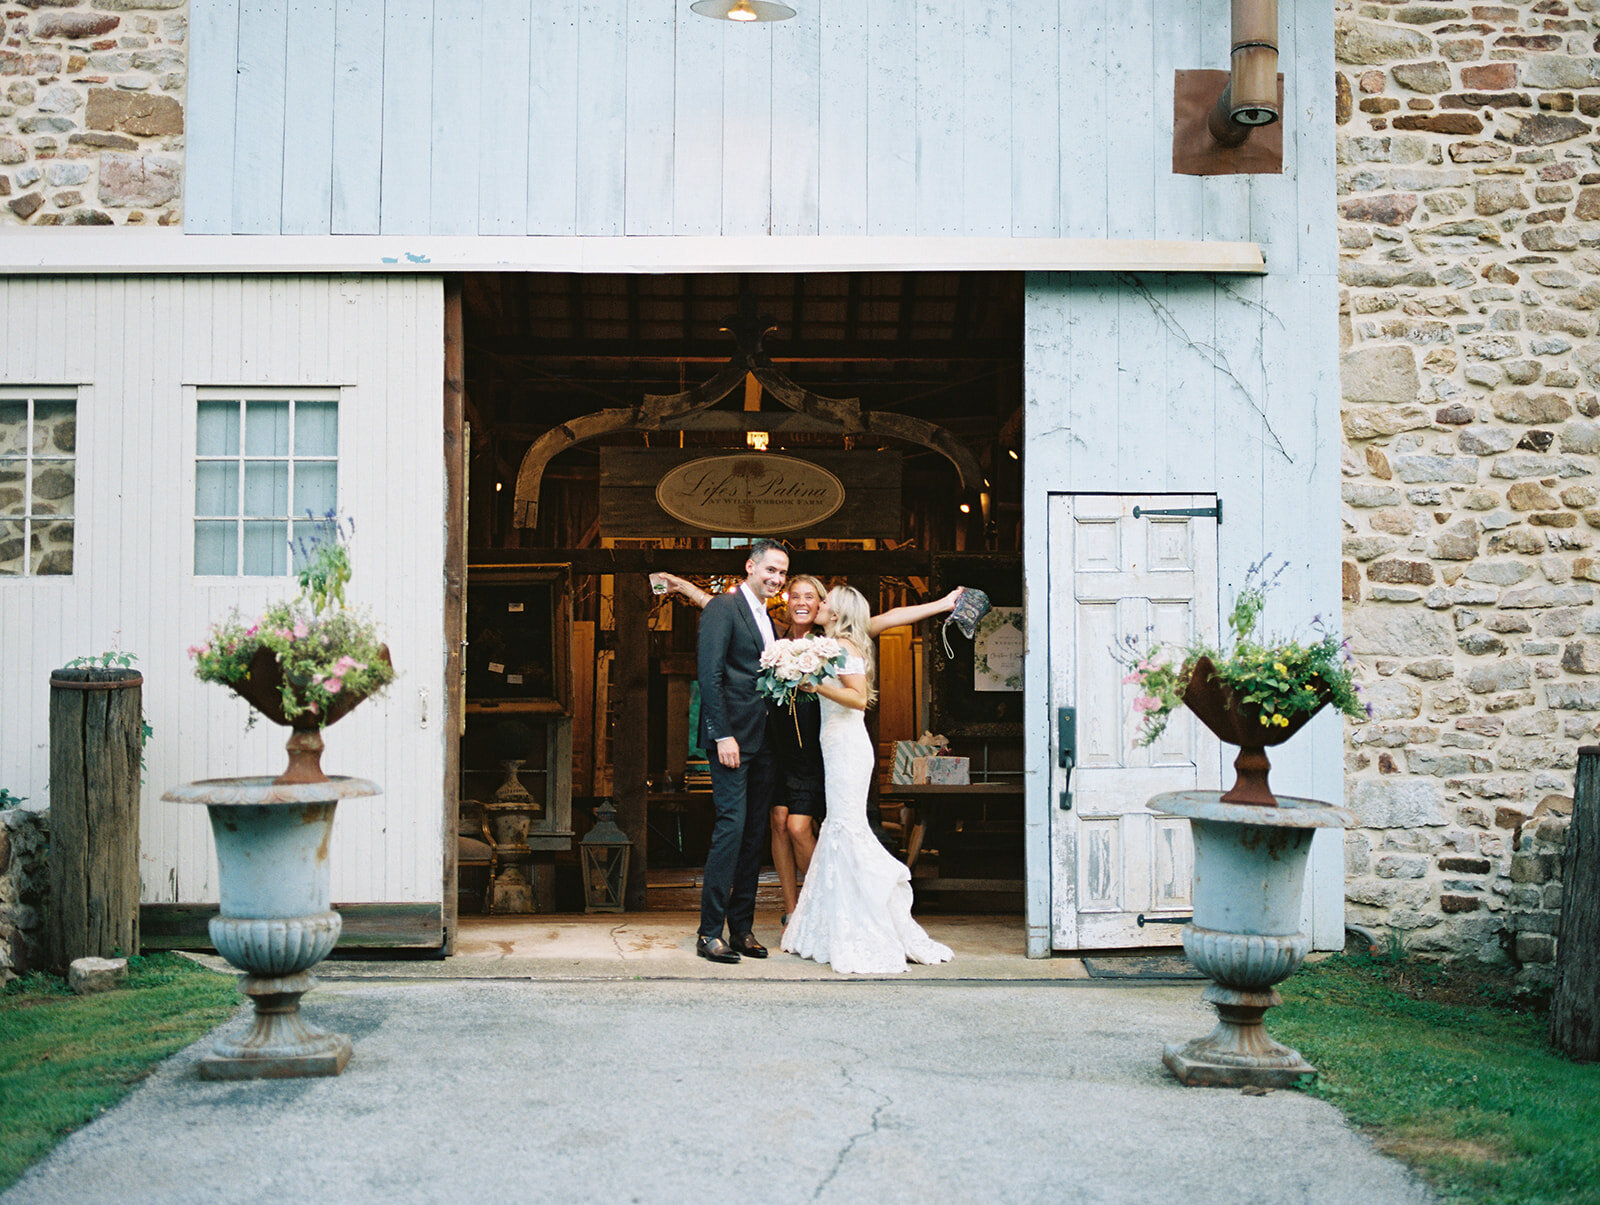 du_soleil_photographie_life'spatina_willowbrook_farm_wedding_christine_david_sunset-2_websize